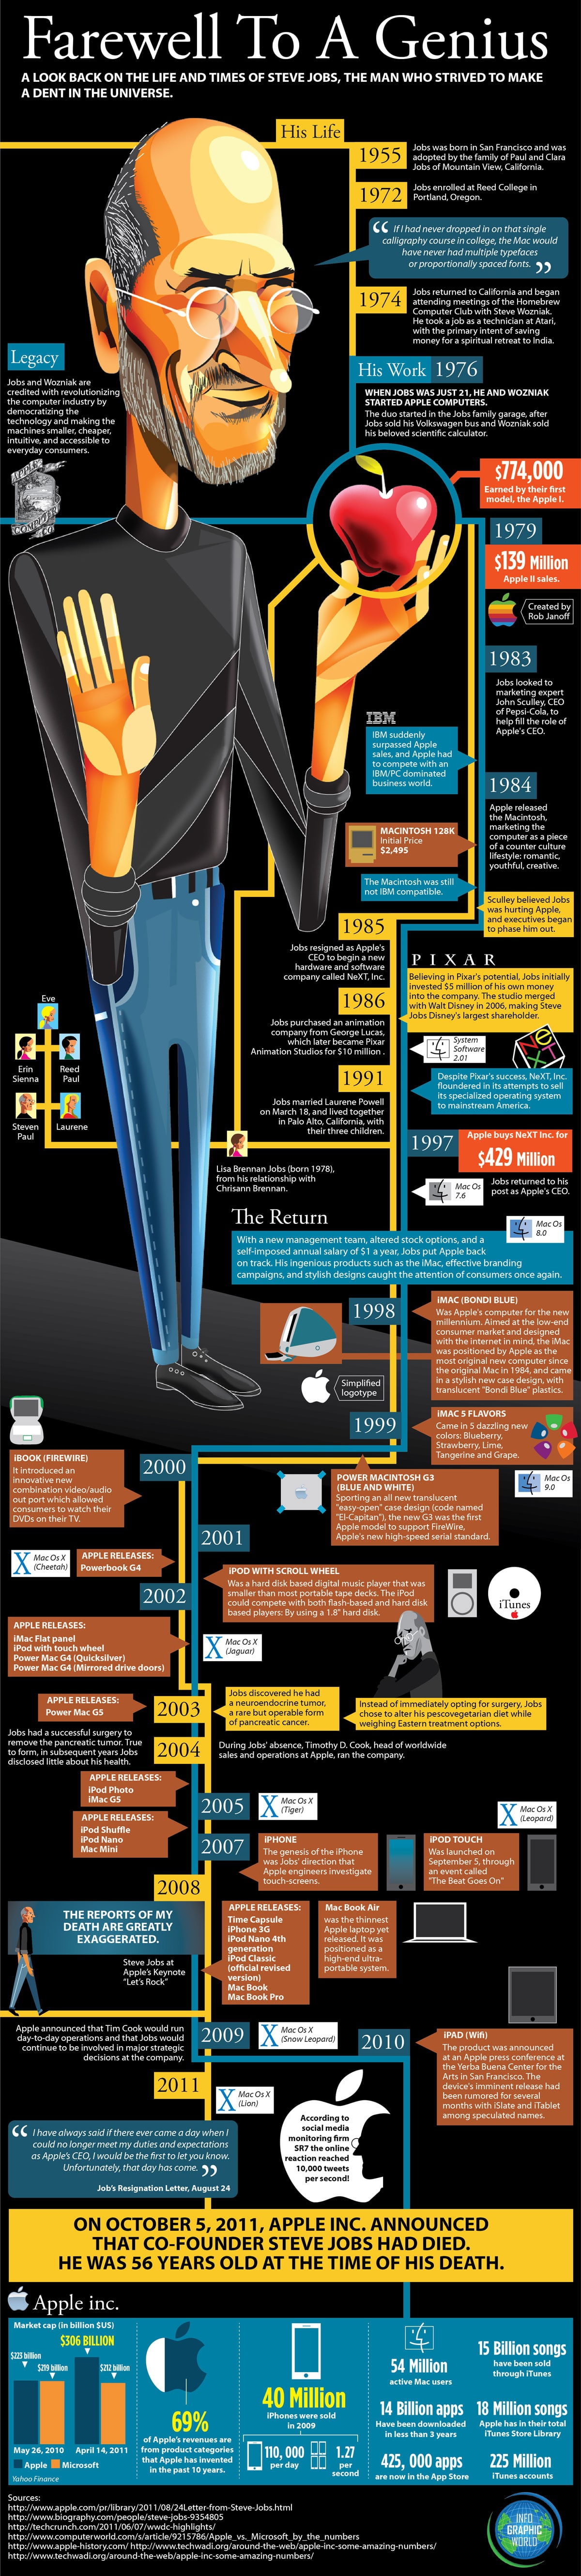 Steve Jobs - Farewell to a Genius - Infographic